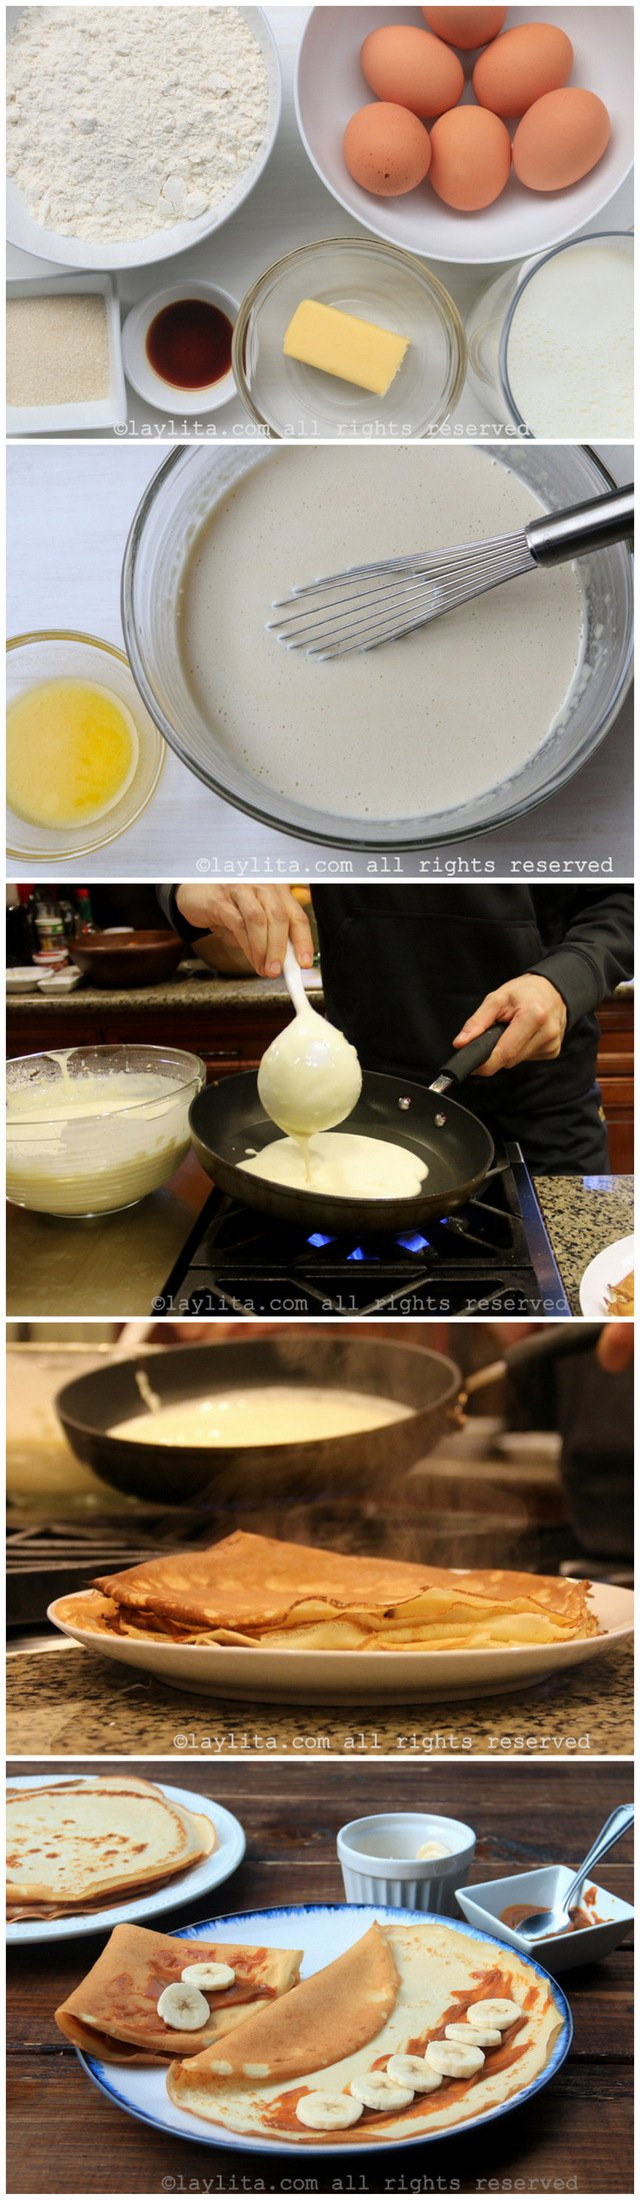 Basic recipe for making French sweet crepes